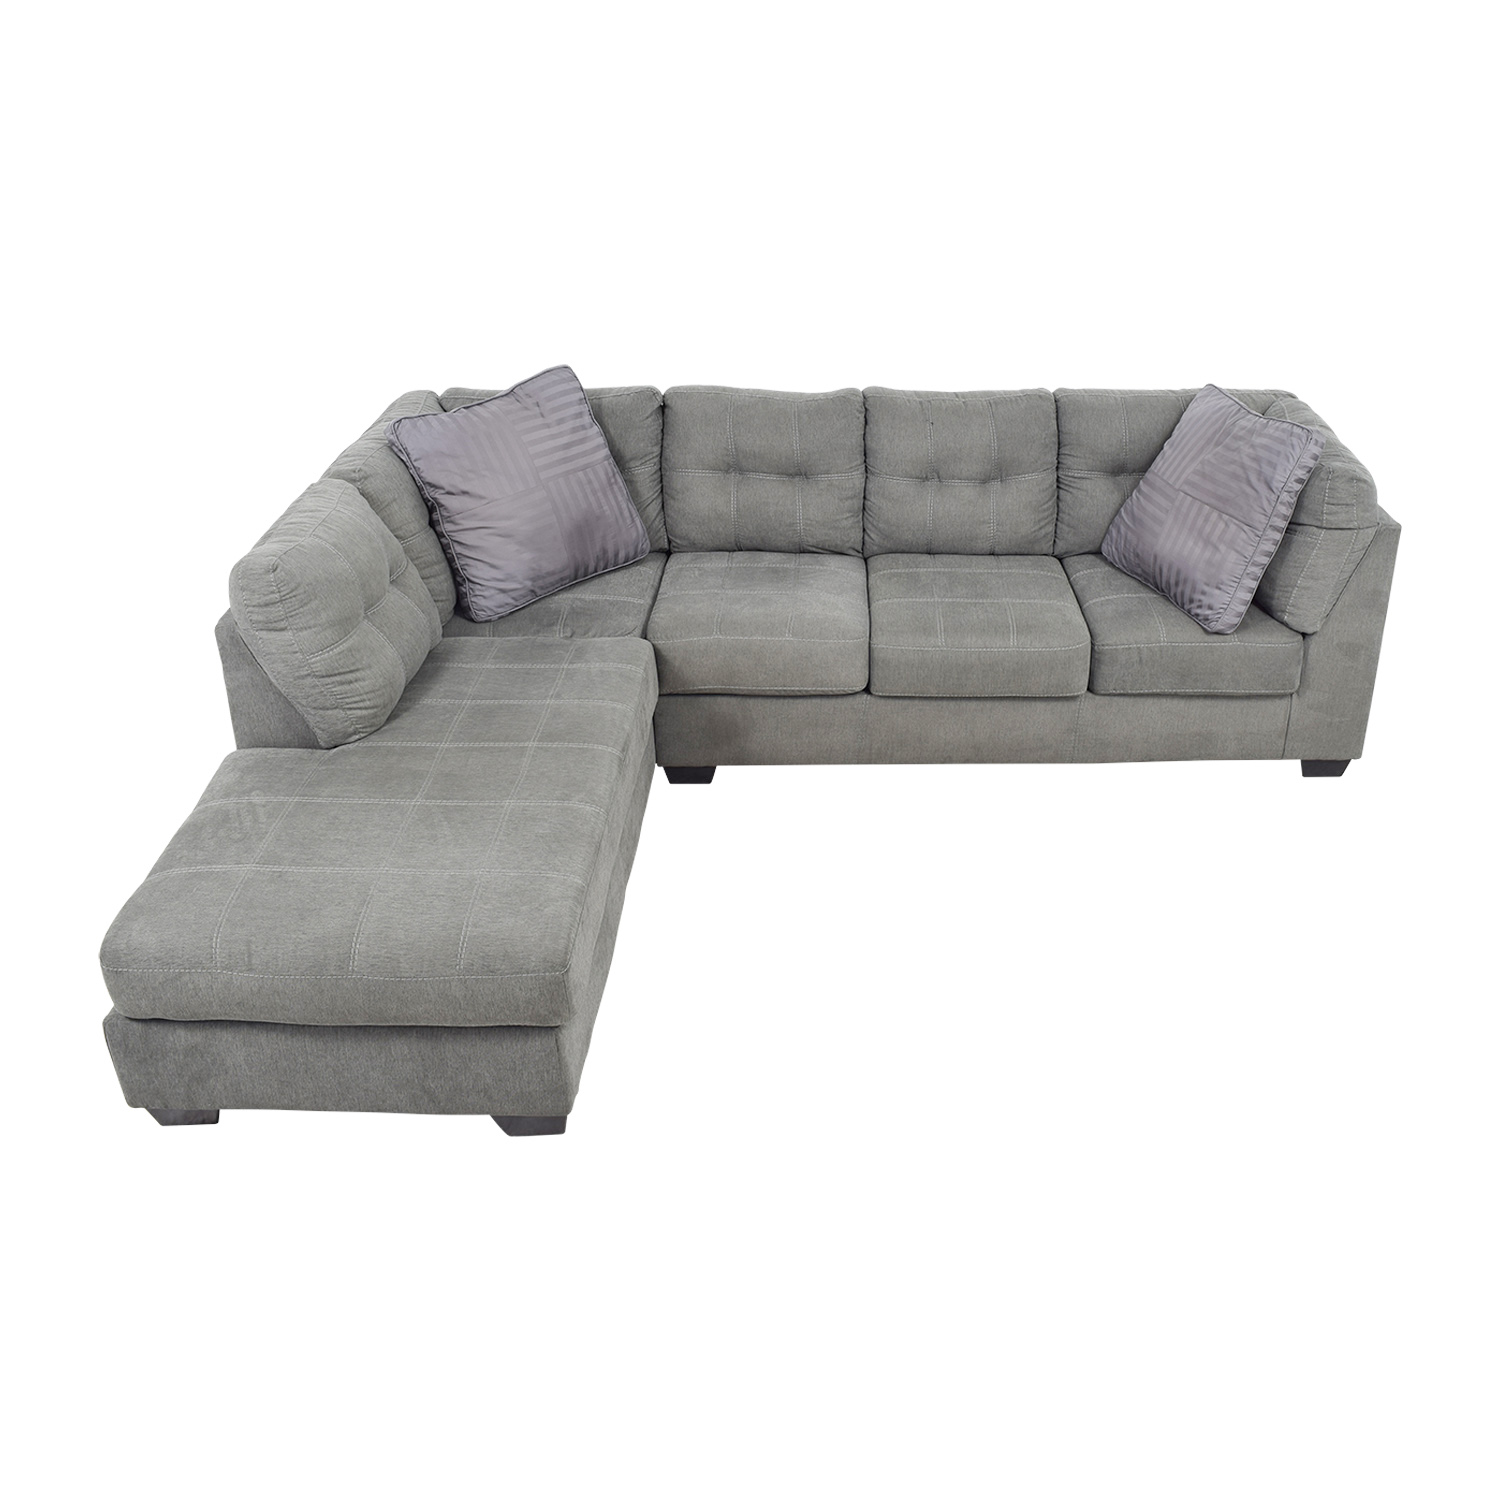 ... Jennifer Convertibles Jennifer Convertibles Arthur Grey Left Arm Chaise Sectional coupon ...  sc 1 st  Furnishare : jennifer convertible sectional - Sectionals, Sofas & Couches